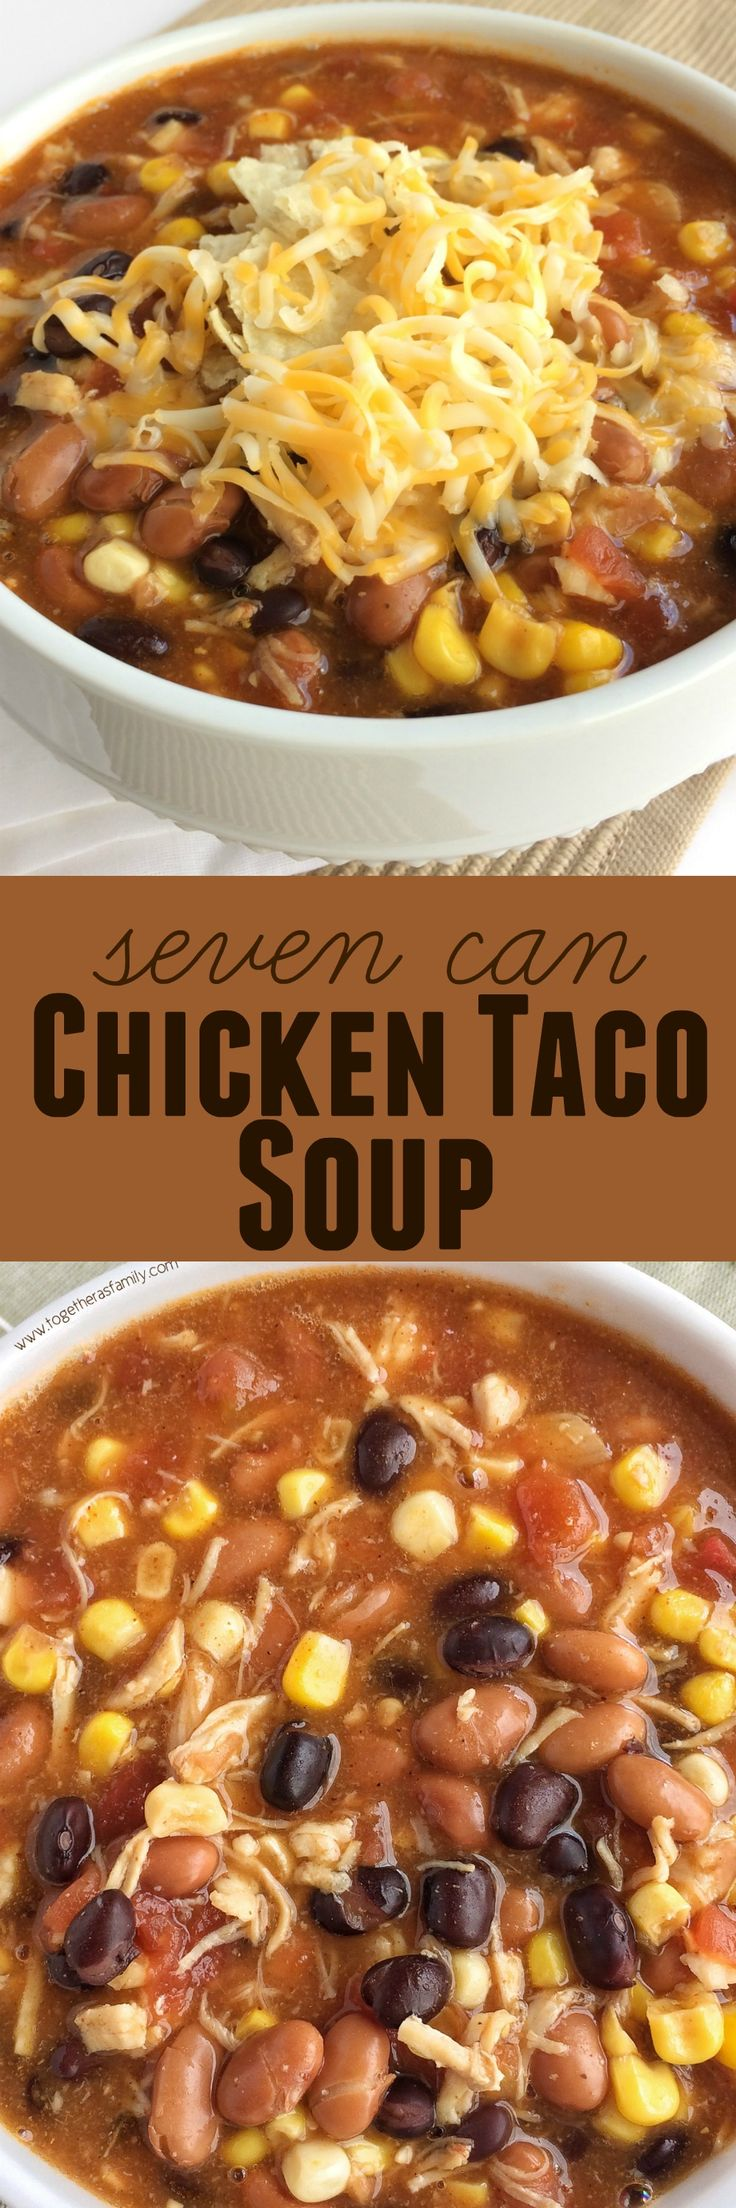 Dinner does not get any easier than this 7 can chicken taco soup! Dump 7 cans into a pot plus some seasonings and that's it! Serve with tortilla chips, cheese, and sour cream. You won't believe how yummy & easy it is.